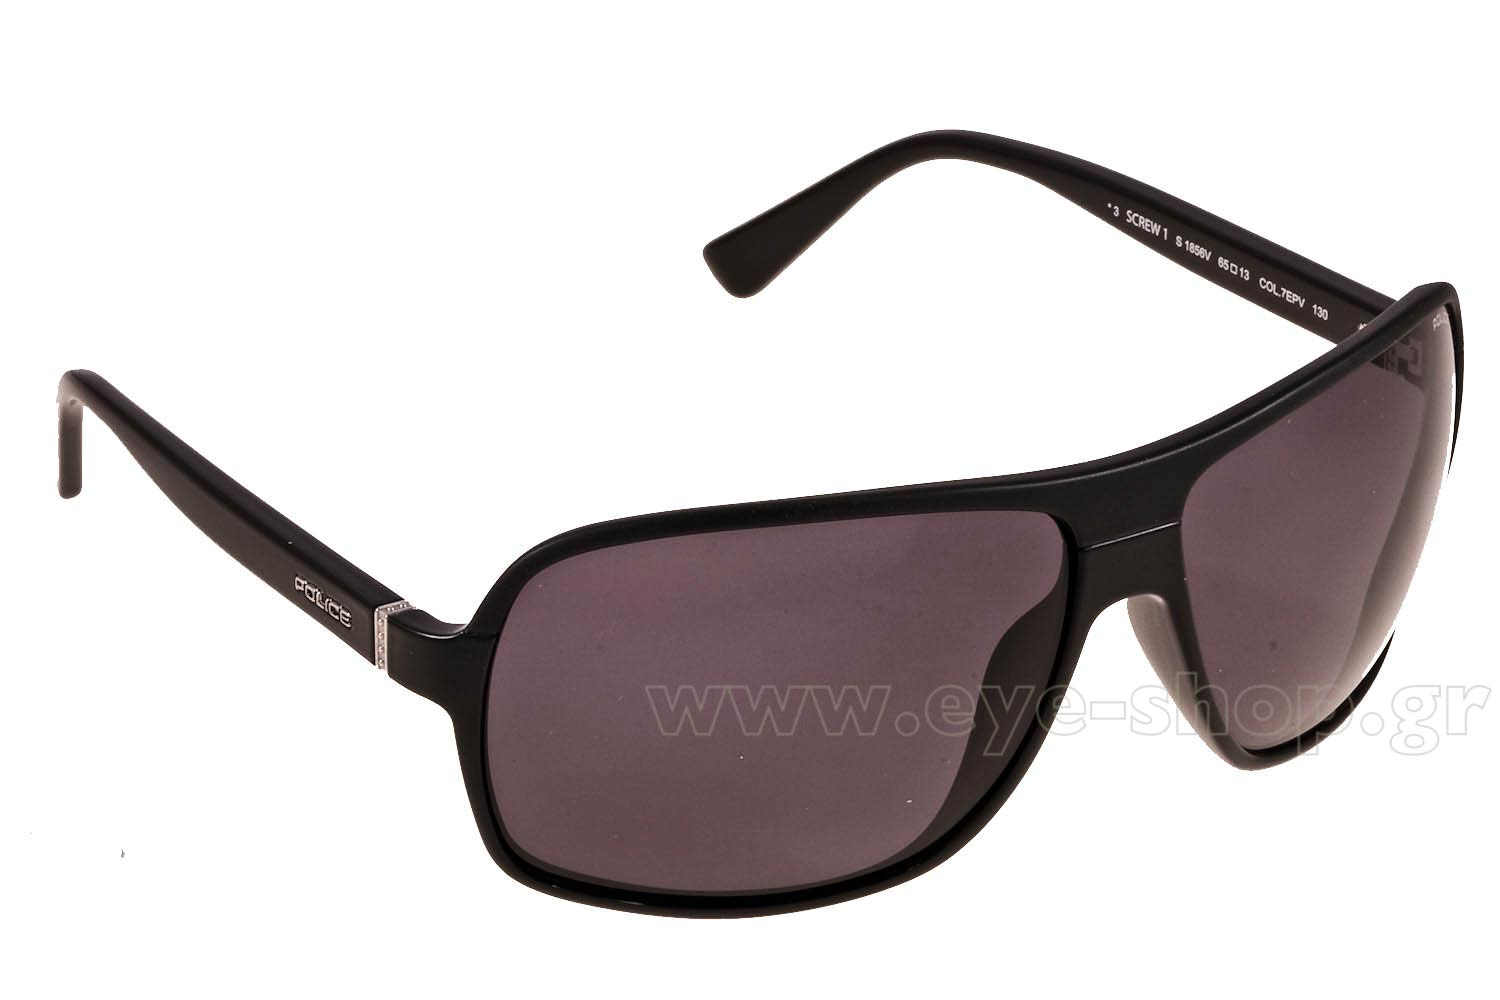 b3a14d890697 Sunglasses Police Store